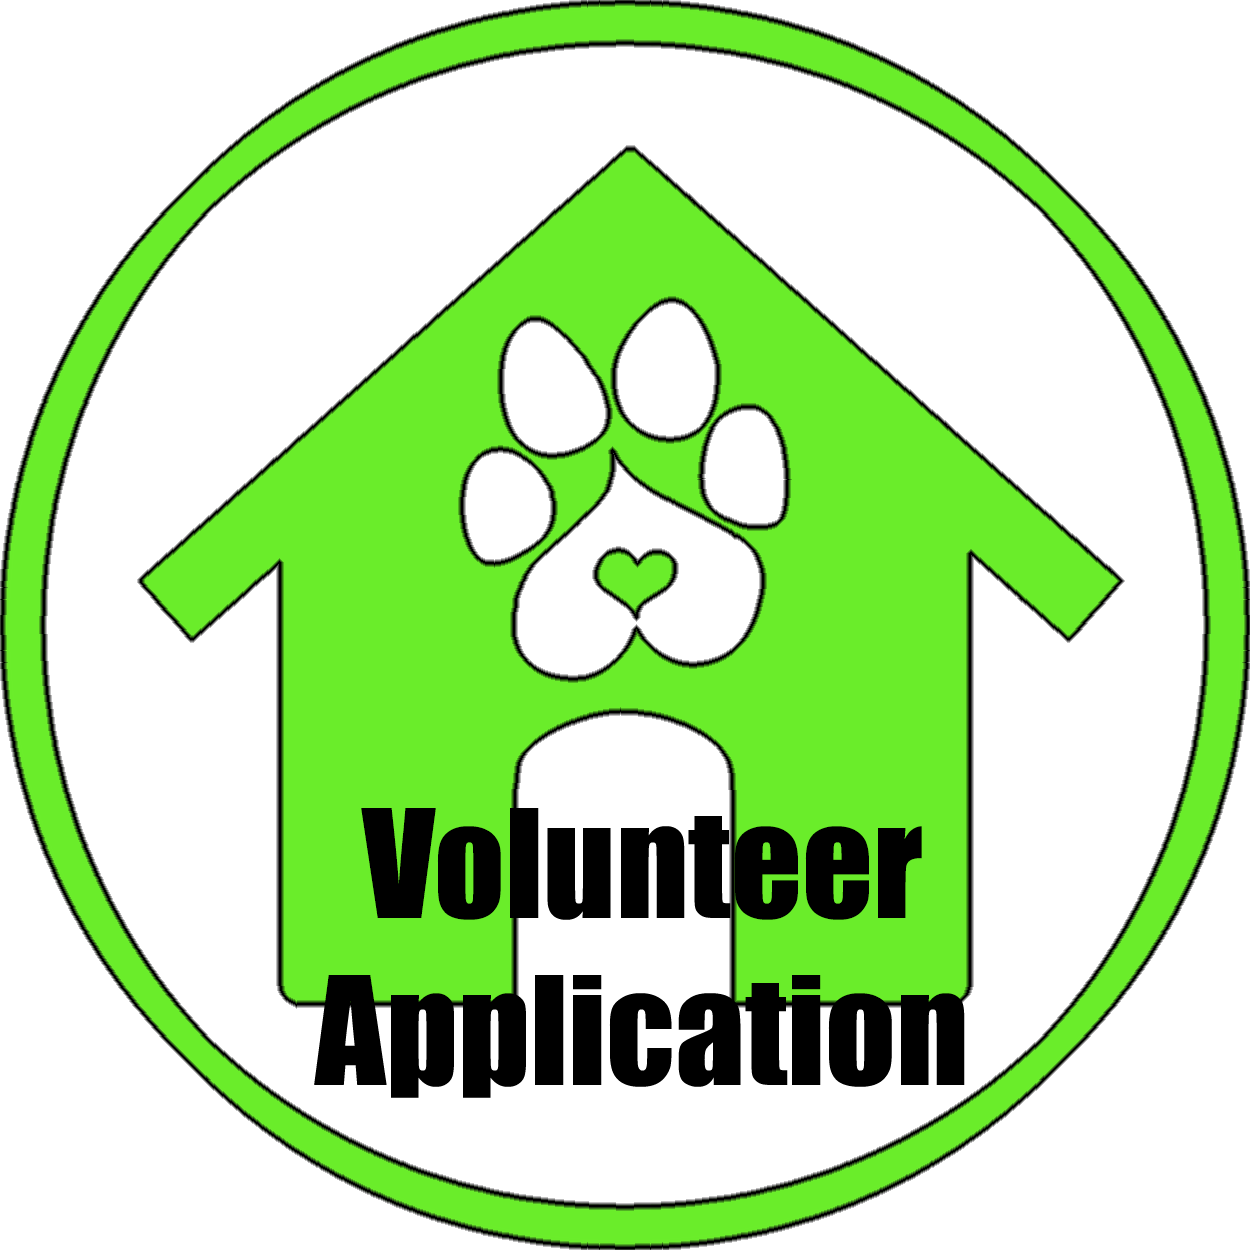 HOUSEvolunteer appliction